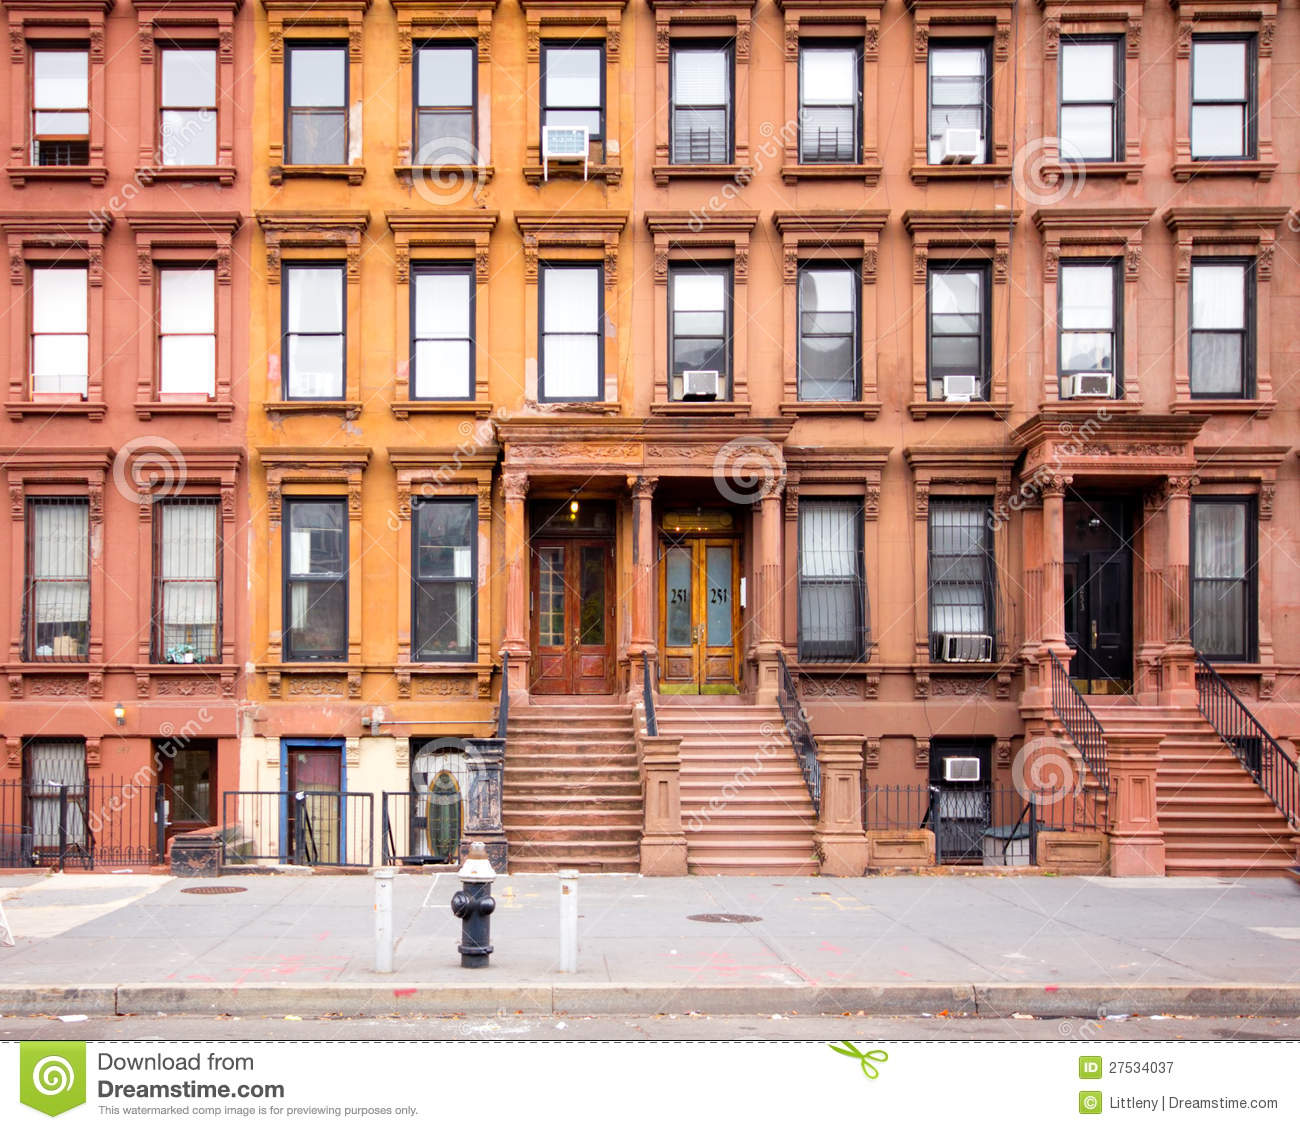 Harlem New York Apartments: NYC Harlem Brownstones Editorial Photography